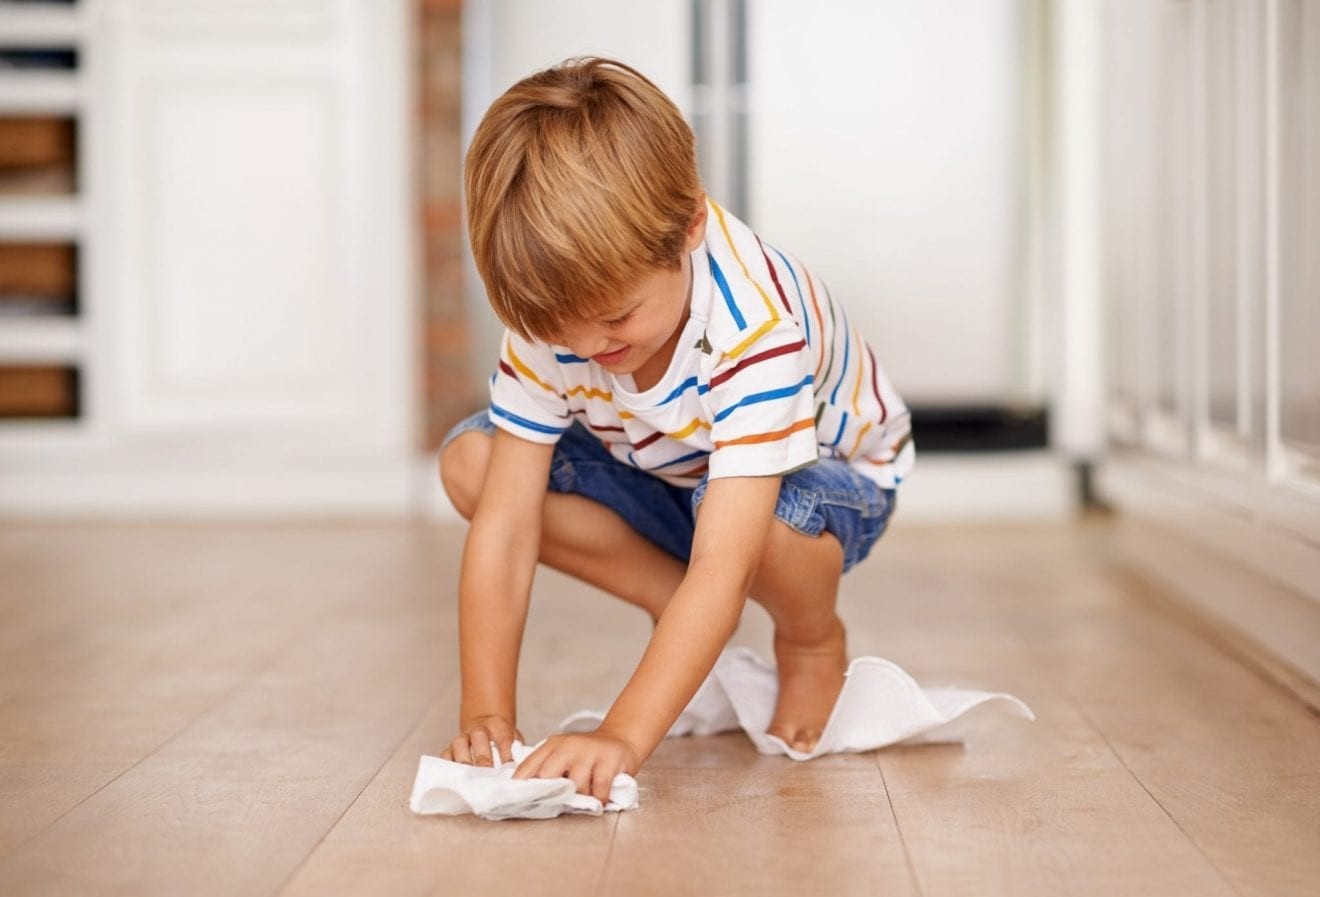 Little boy cleaning the floor with a paper towel